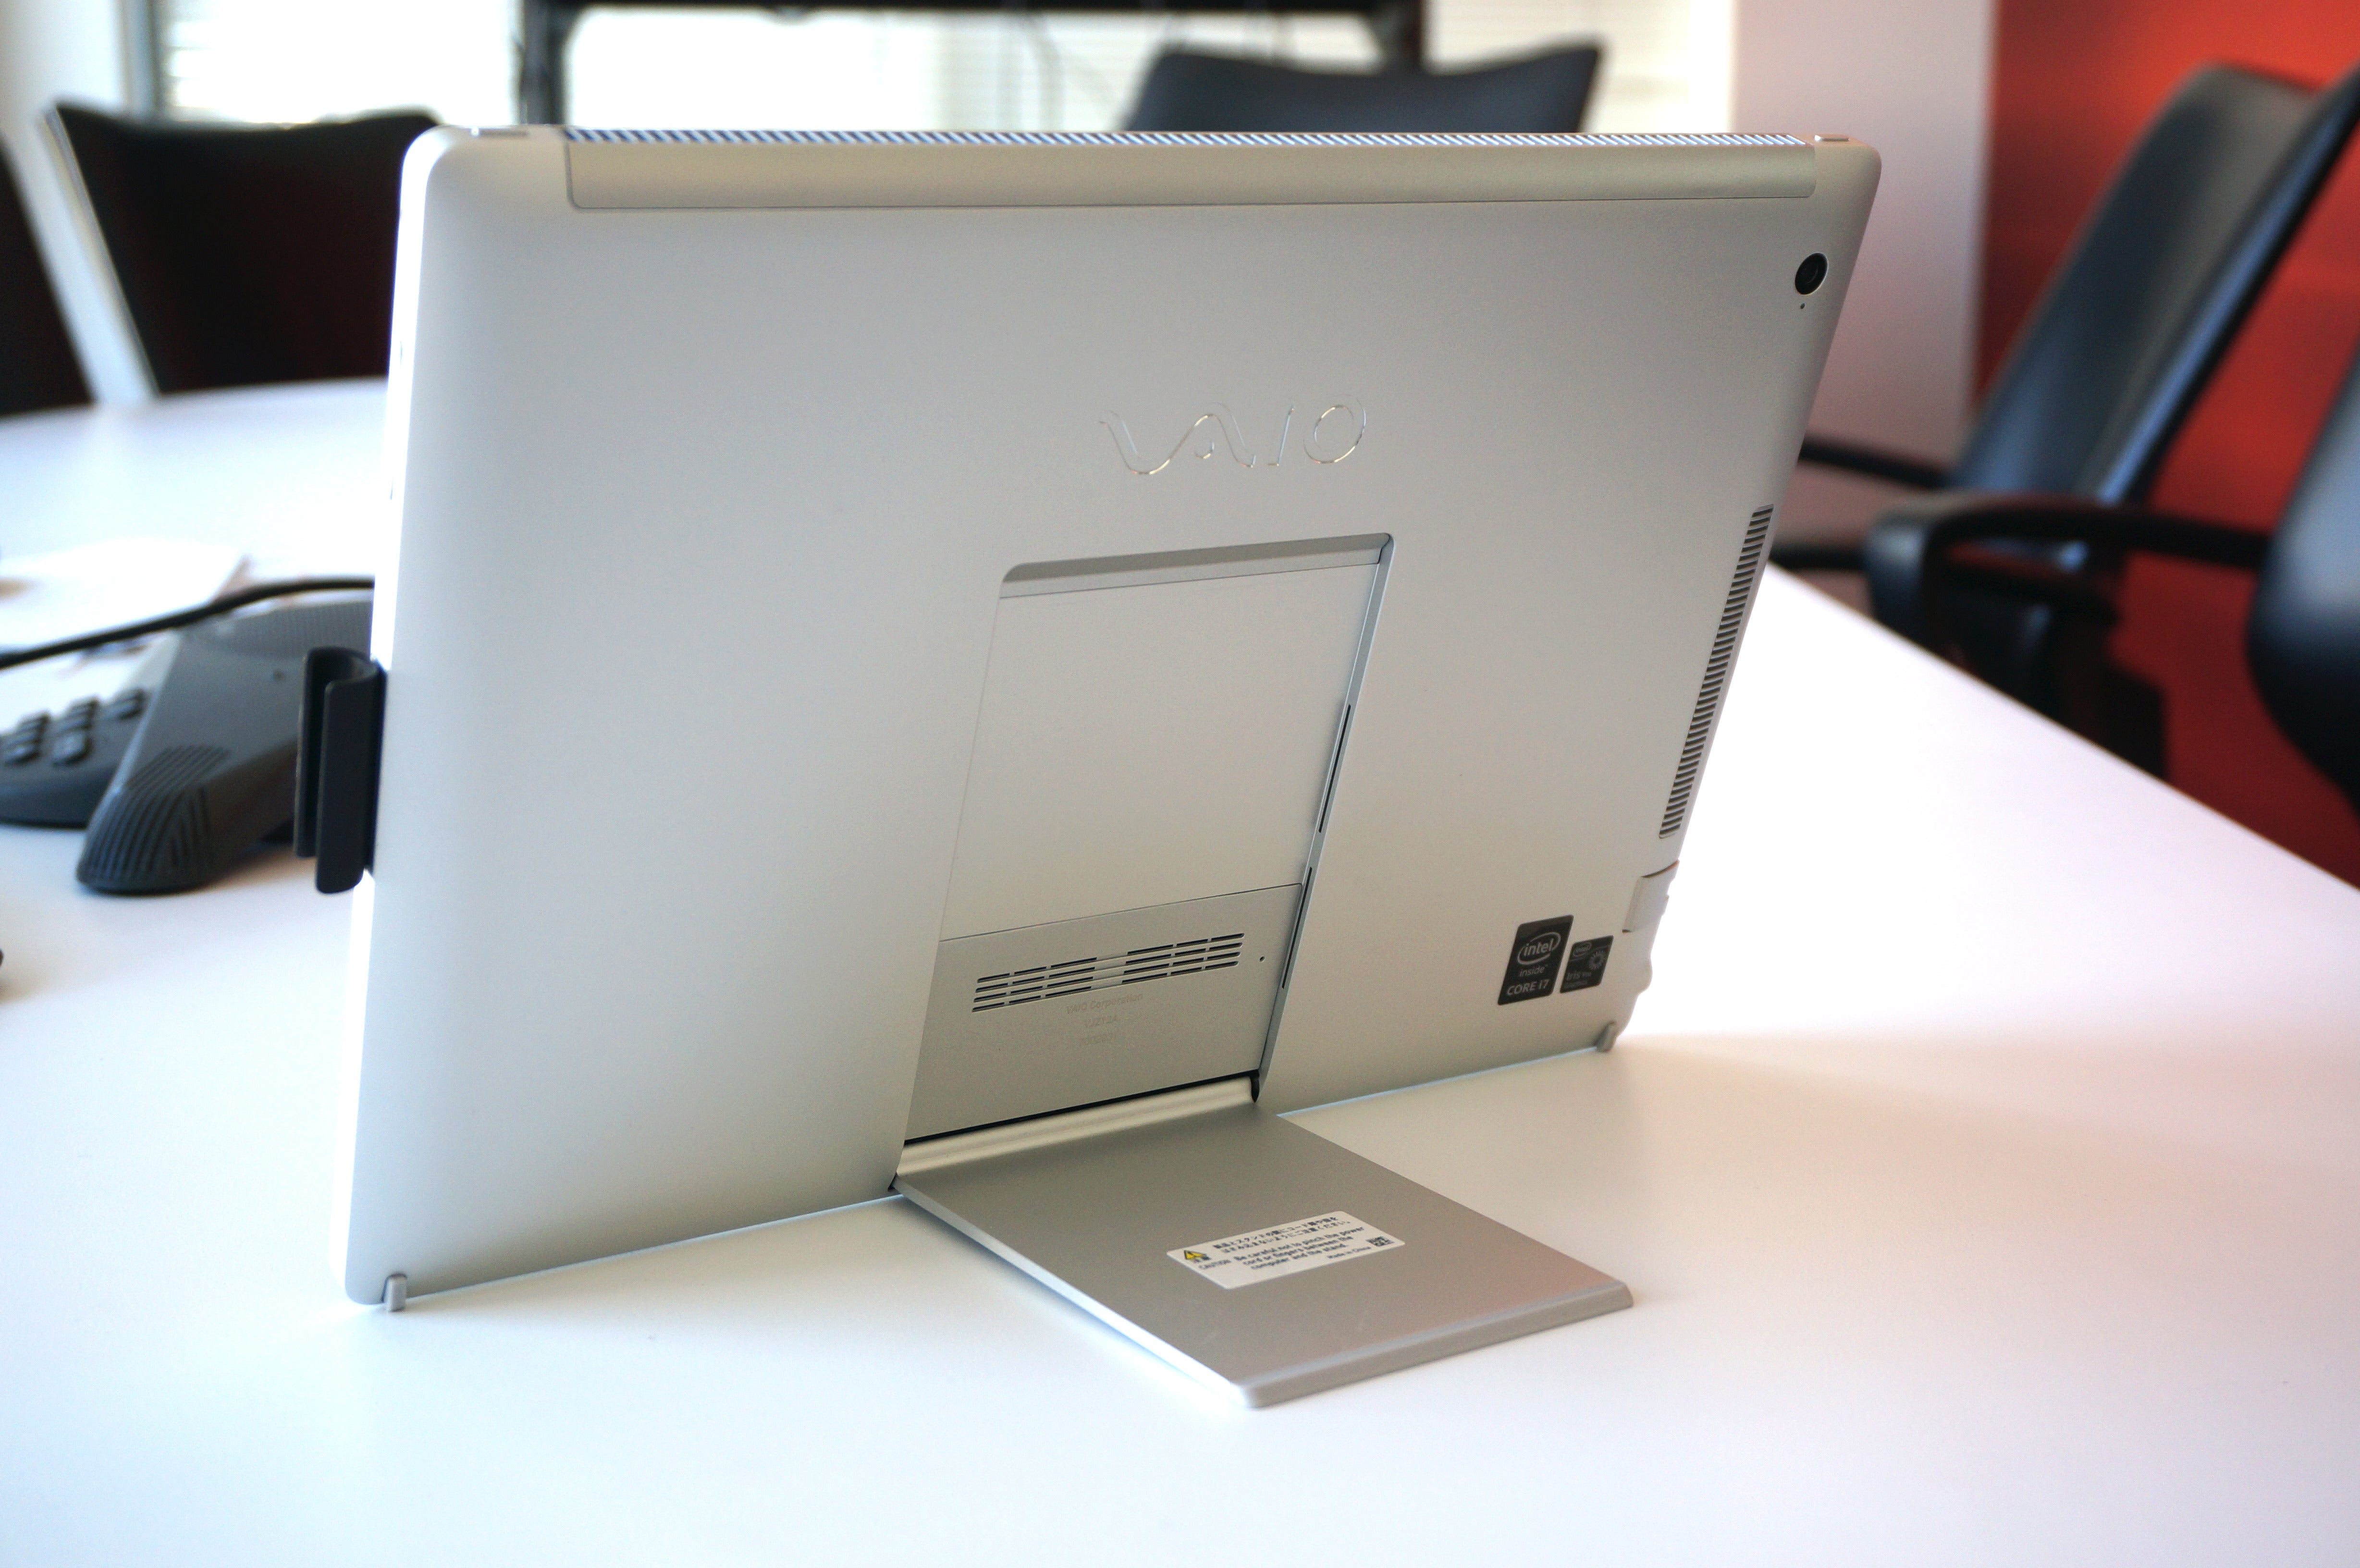 Hands On With The Vaio Canvas A Quad Core Surface Pro 3